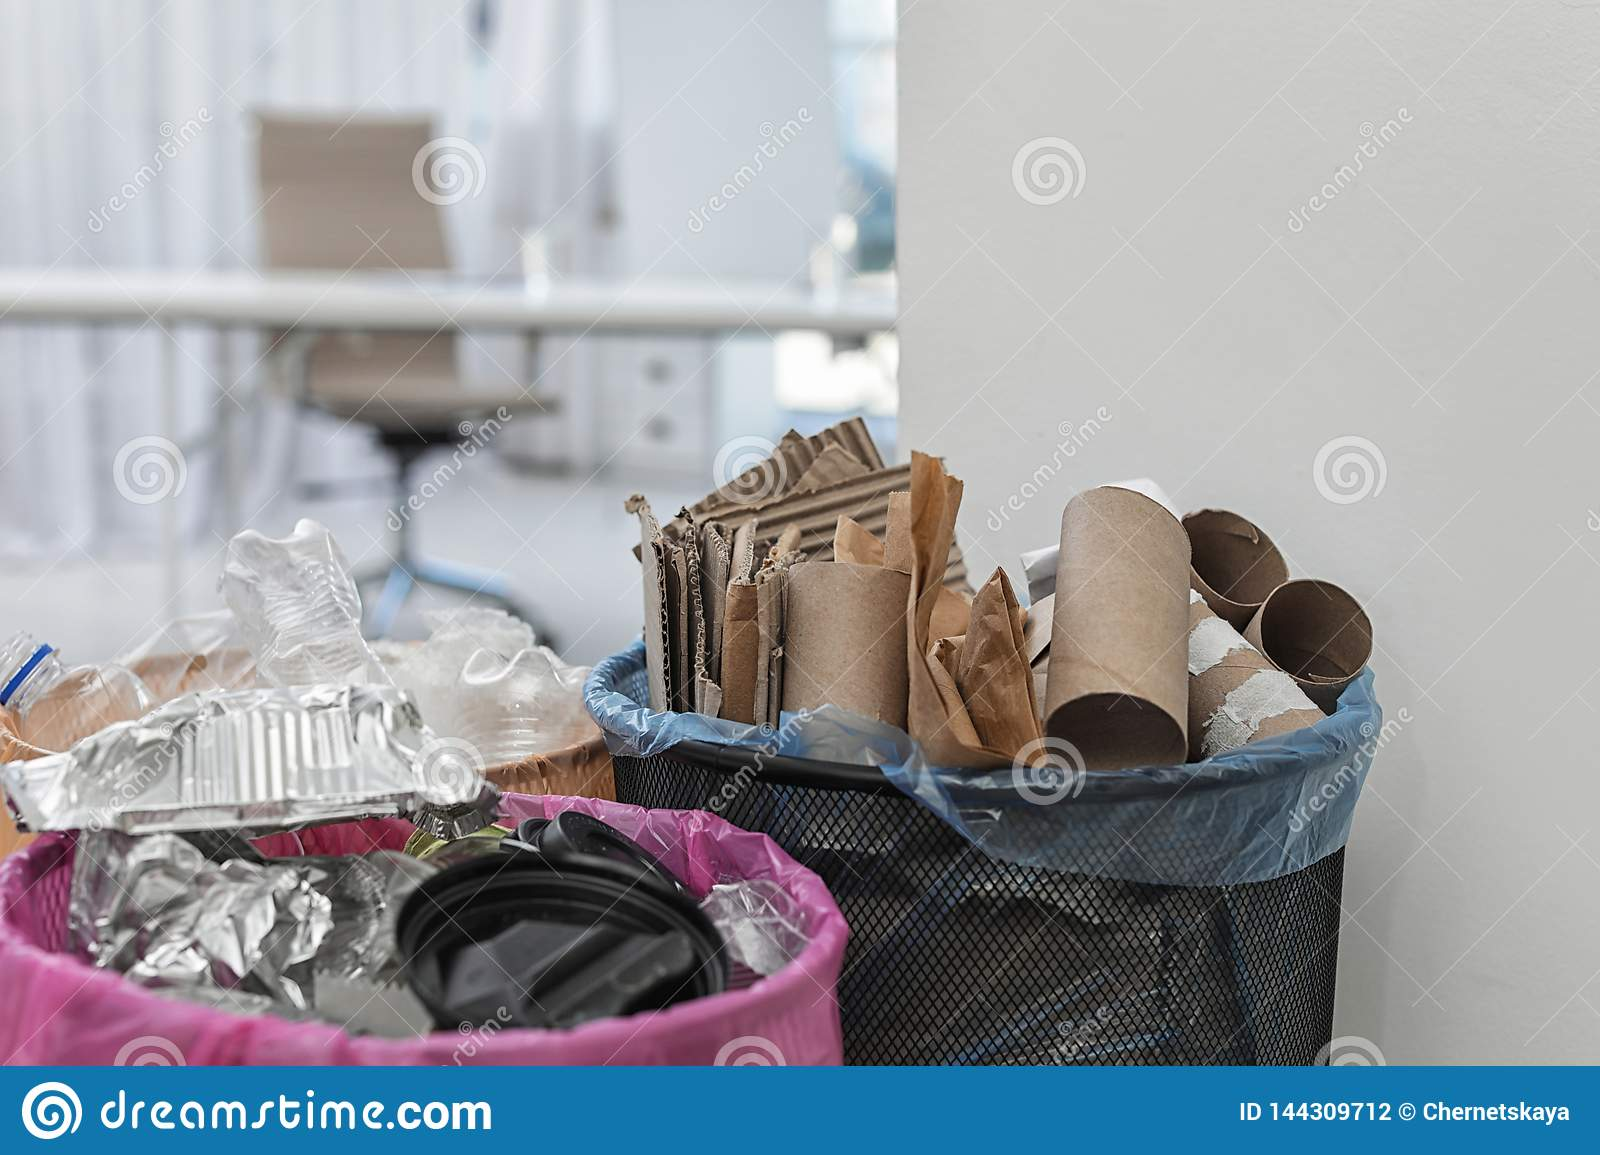 Full Trash Cans In Modern Office Waste Recycling Stock Photo Image Of Copy Full 144309712